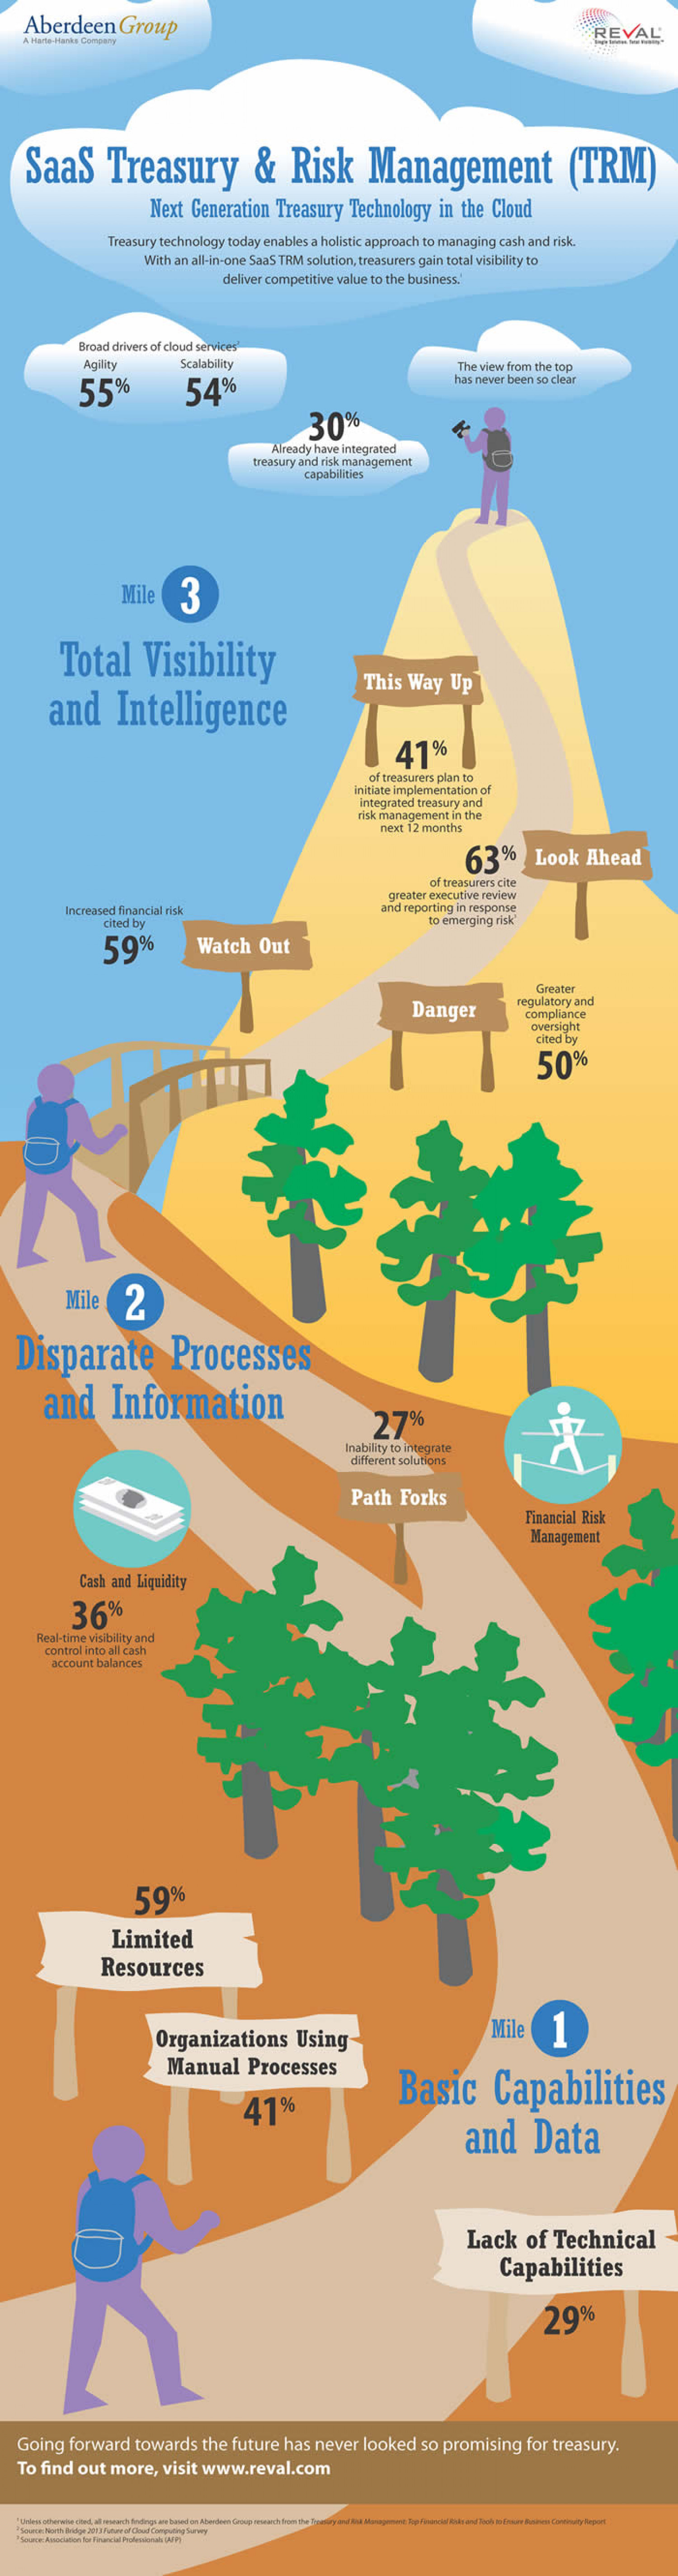 Next Generation Treasury Technology in the Cloud Infographic